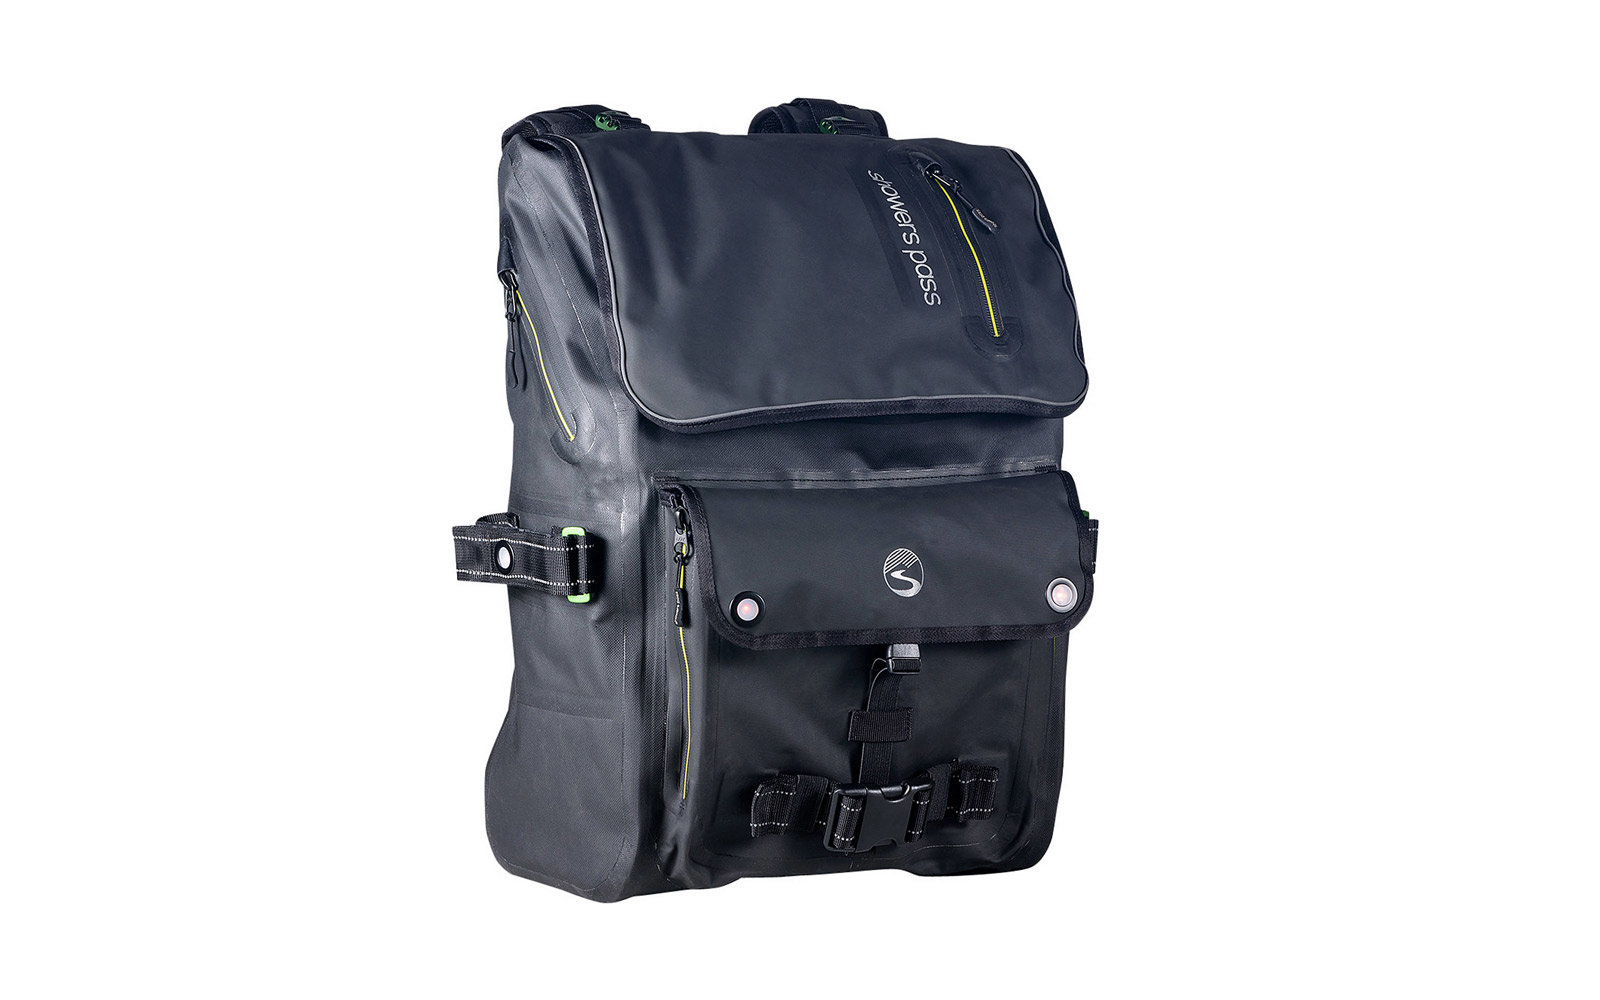 showers pass waterproof daypack